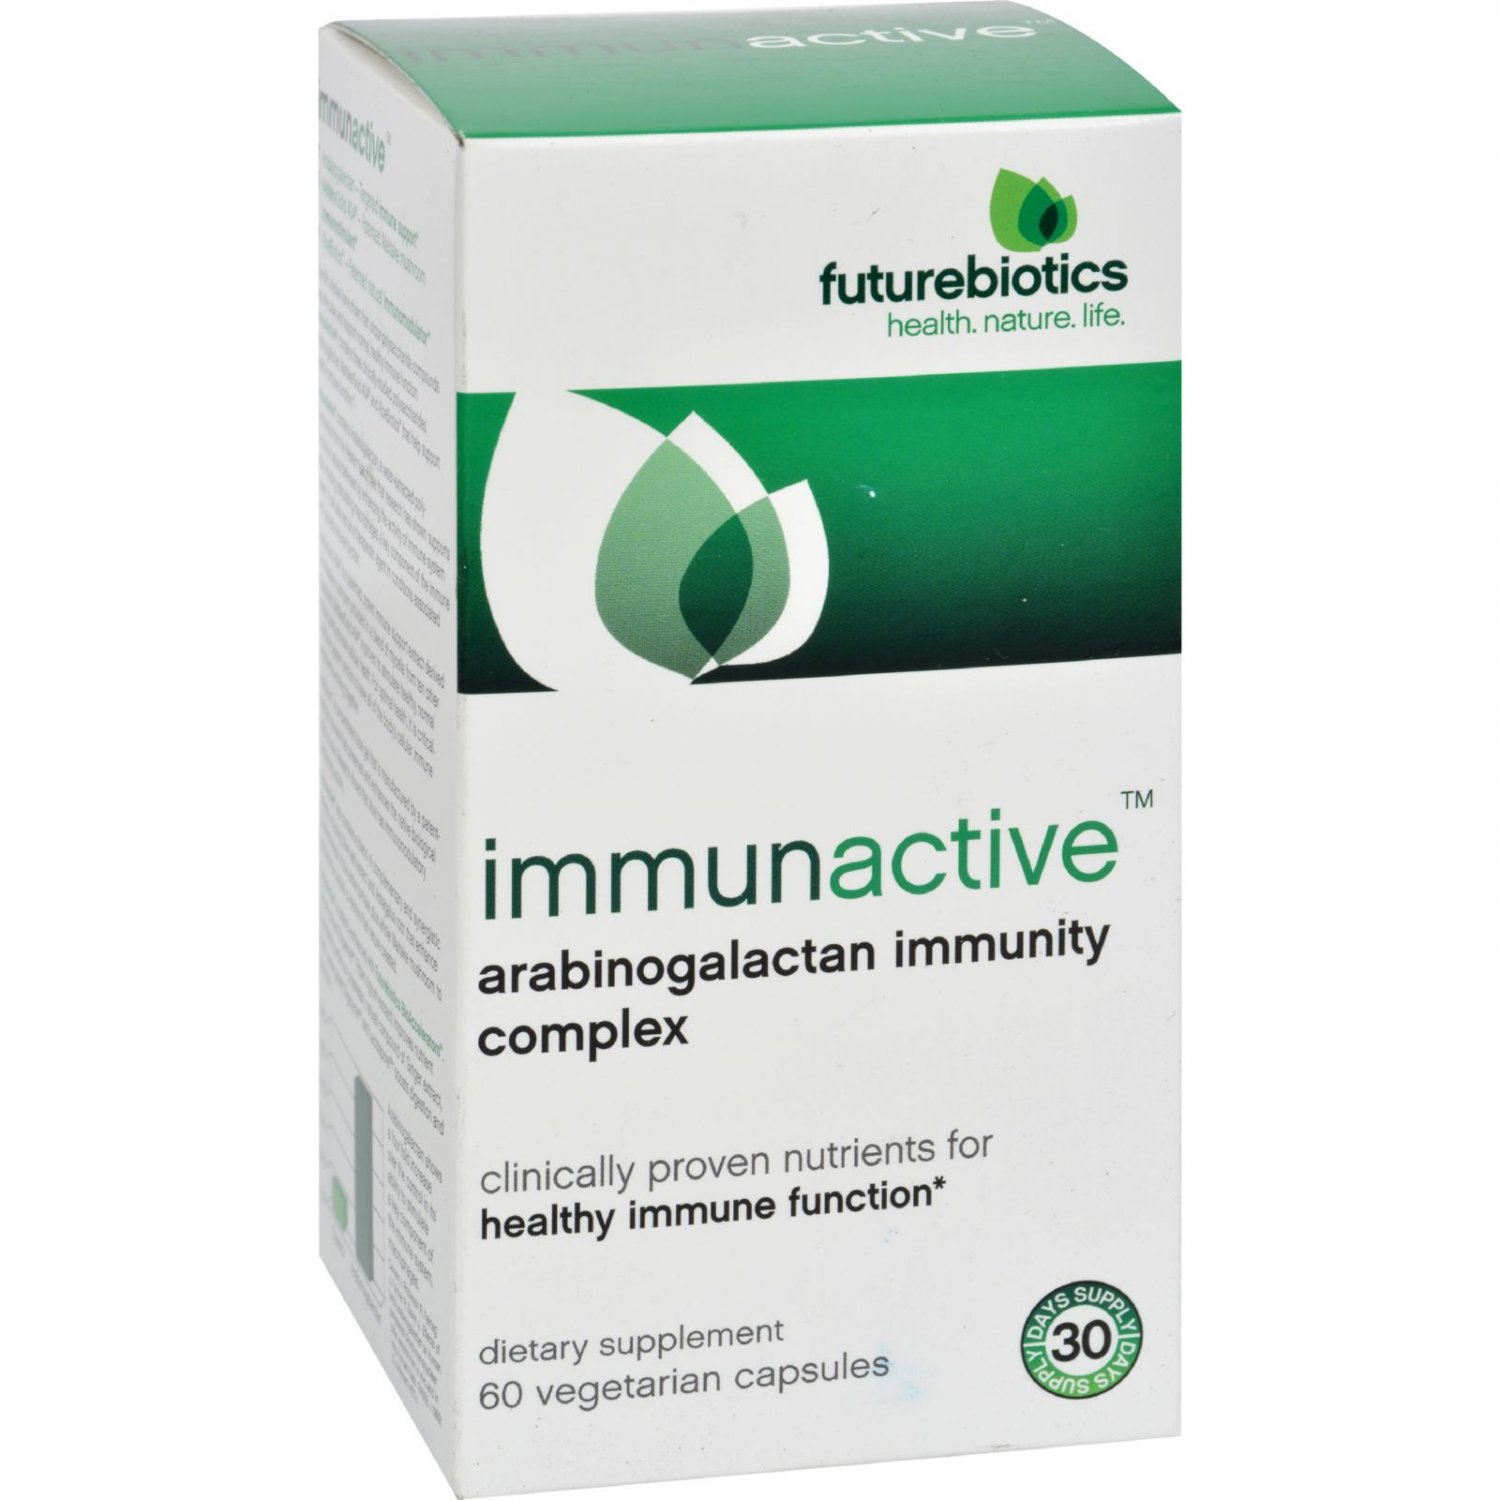 FutureBiotics ImmunActive - 60 Vegetarian Capsules